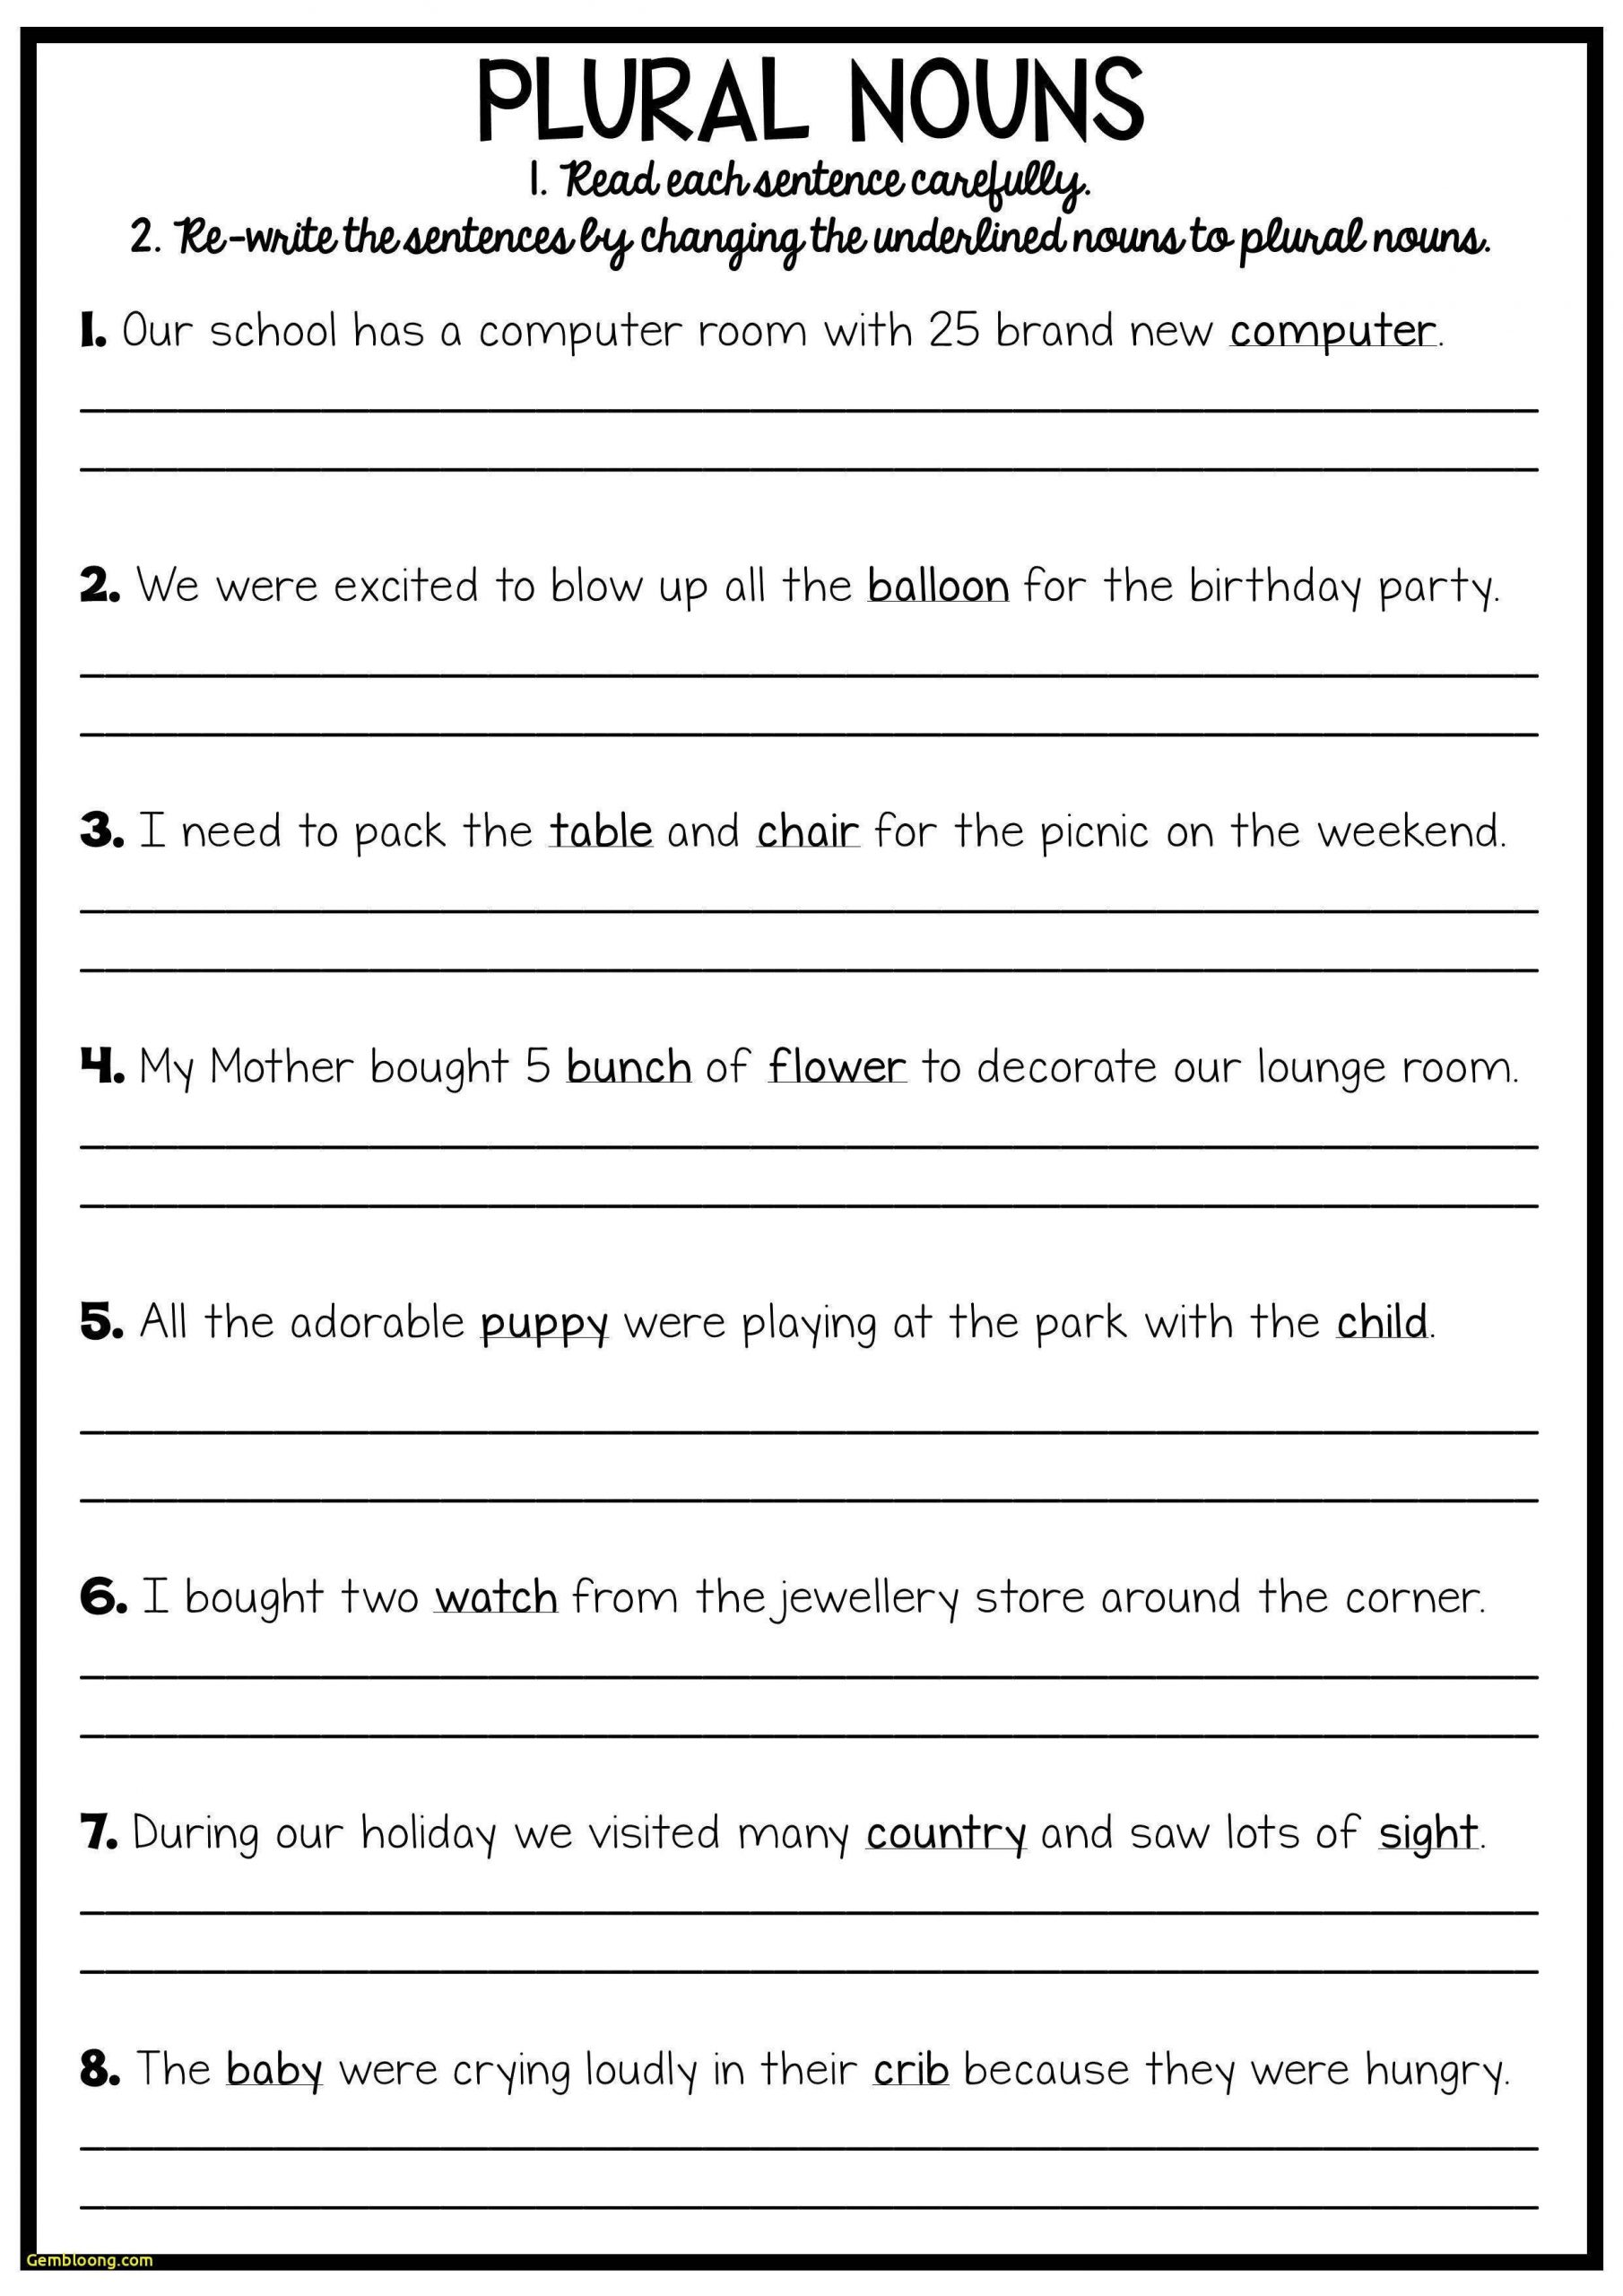 Grammar Worksheet 3rd Grade Ficialqualified Esl Beginner Worksheets